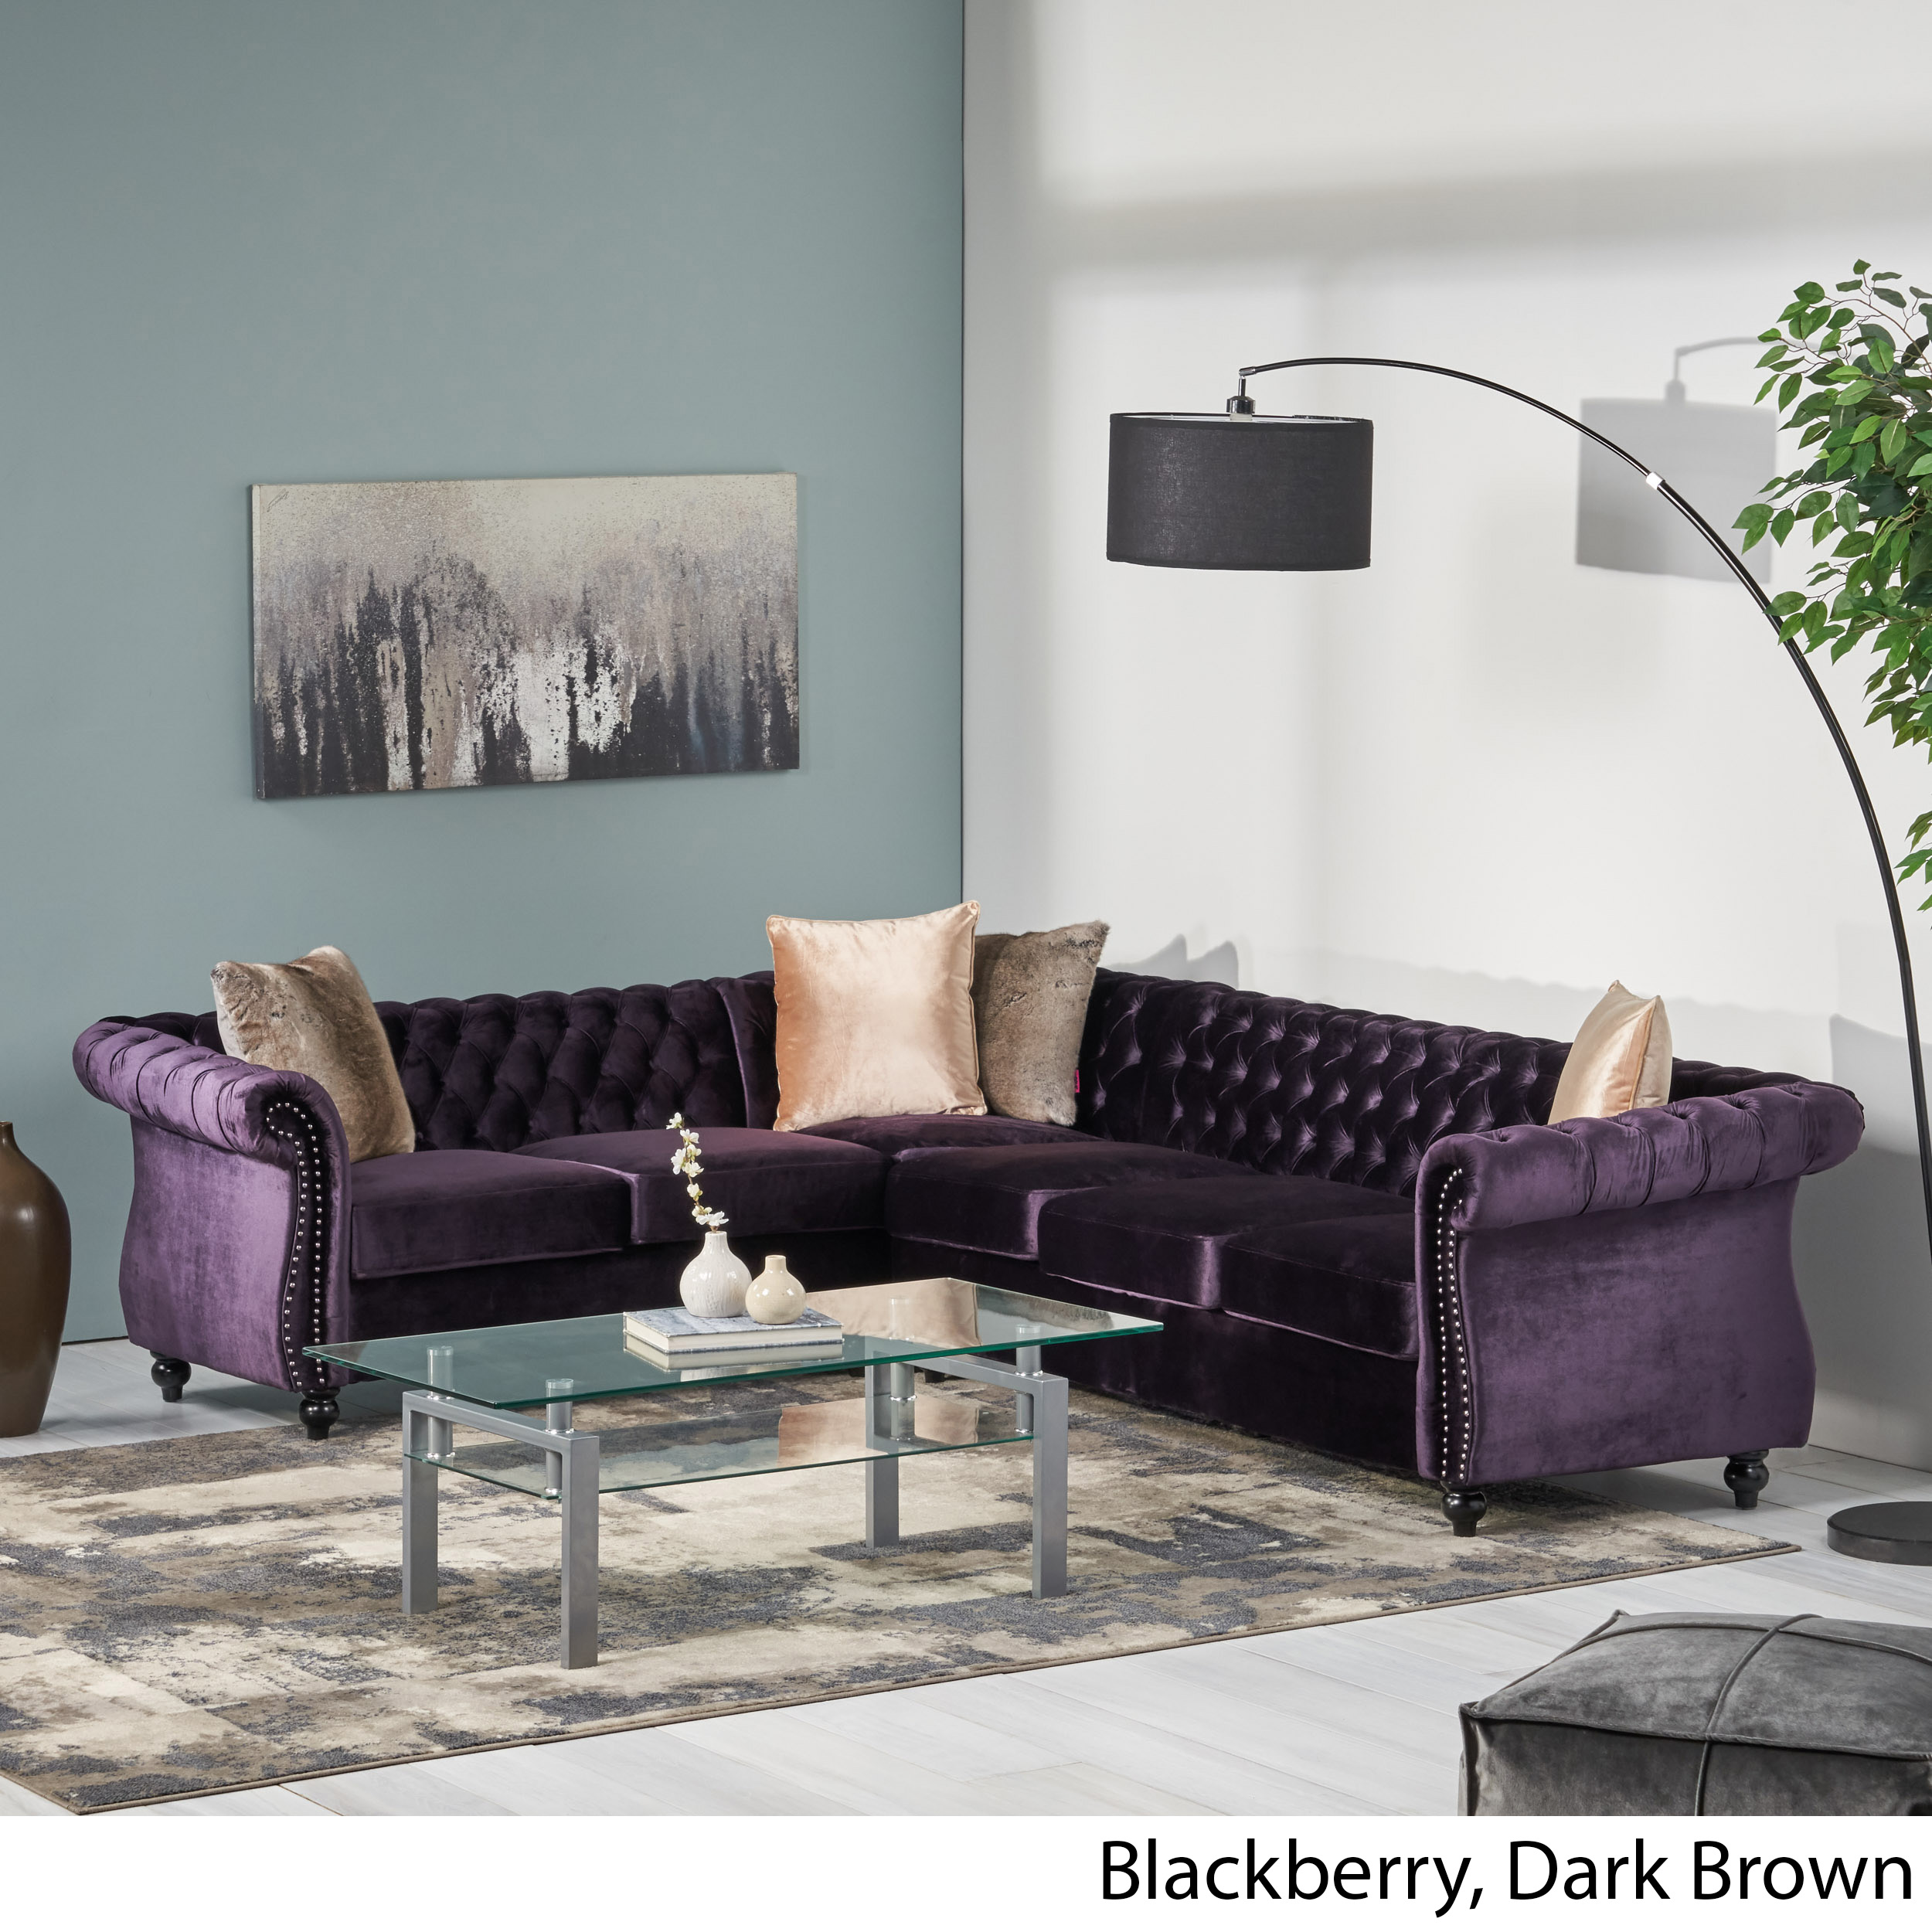 Amberside-6-Seater-Velvet-Tufted-Chesterfield-Sectional thumbnail 3